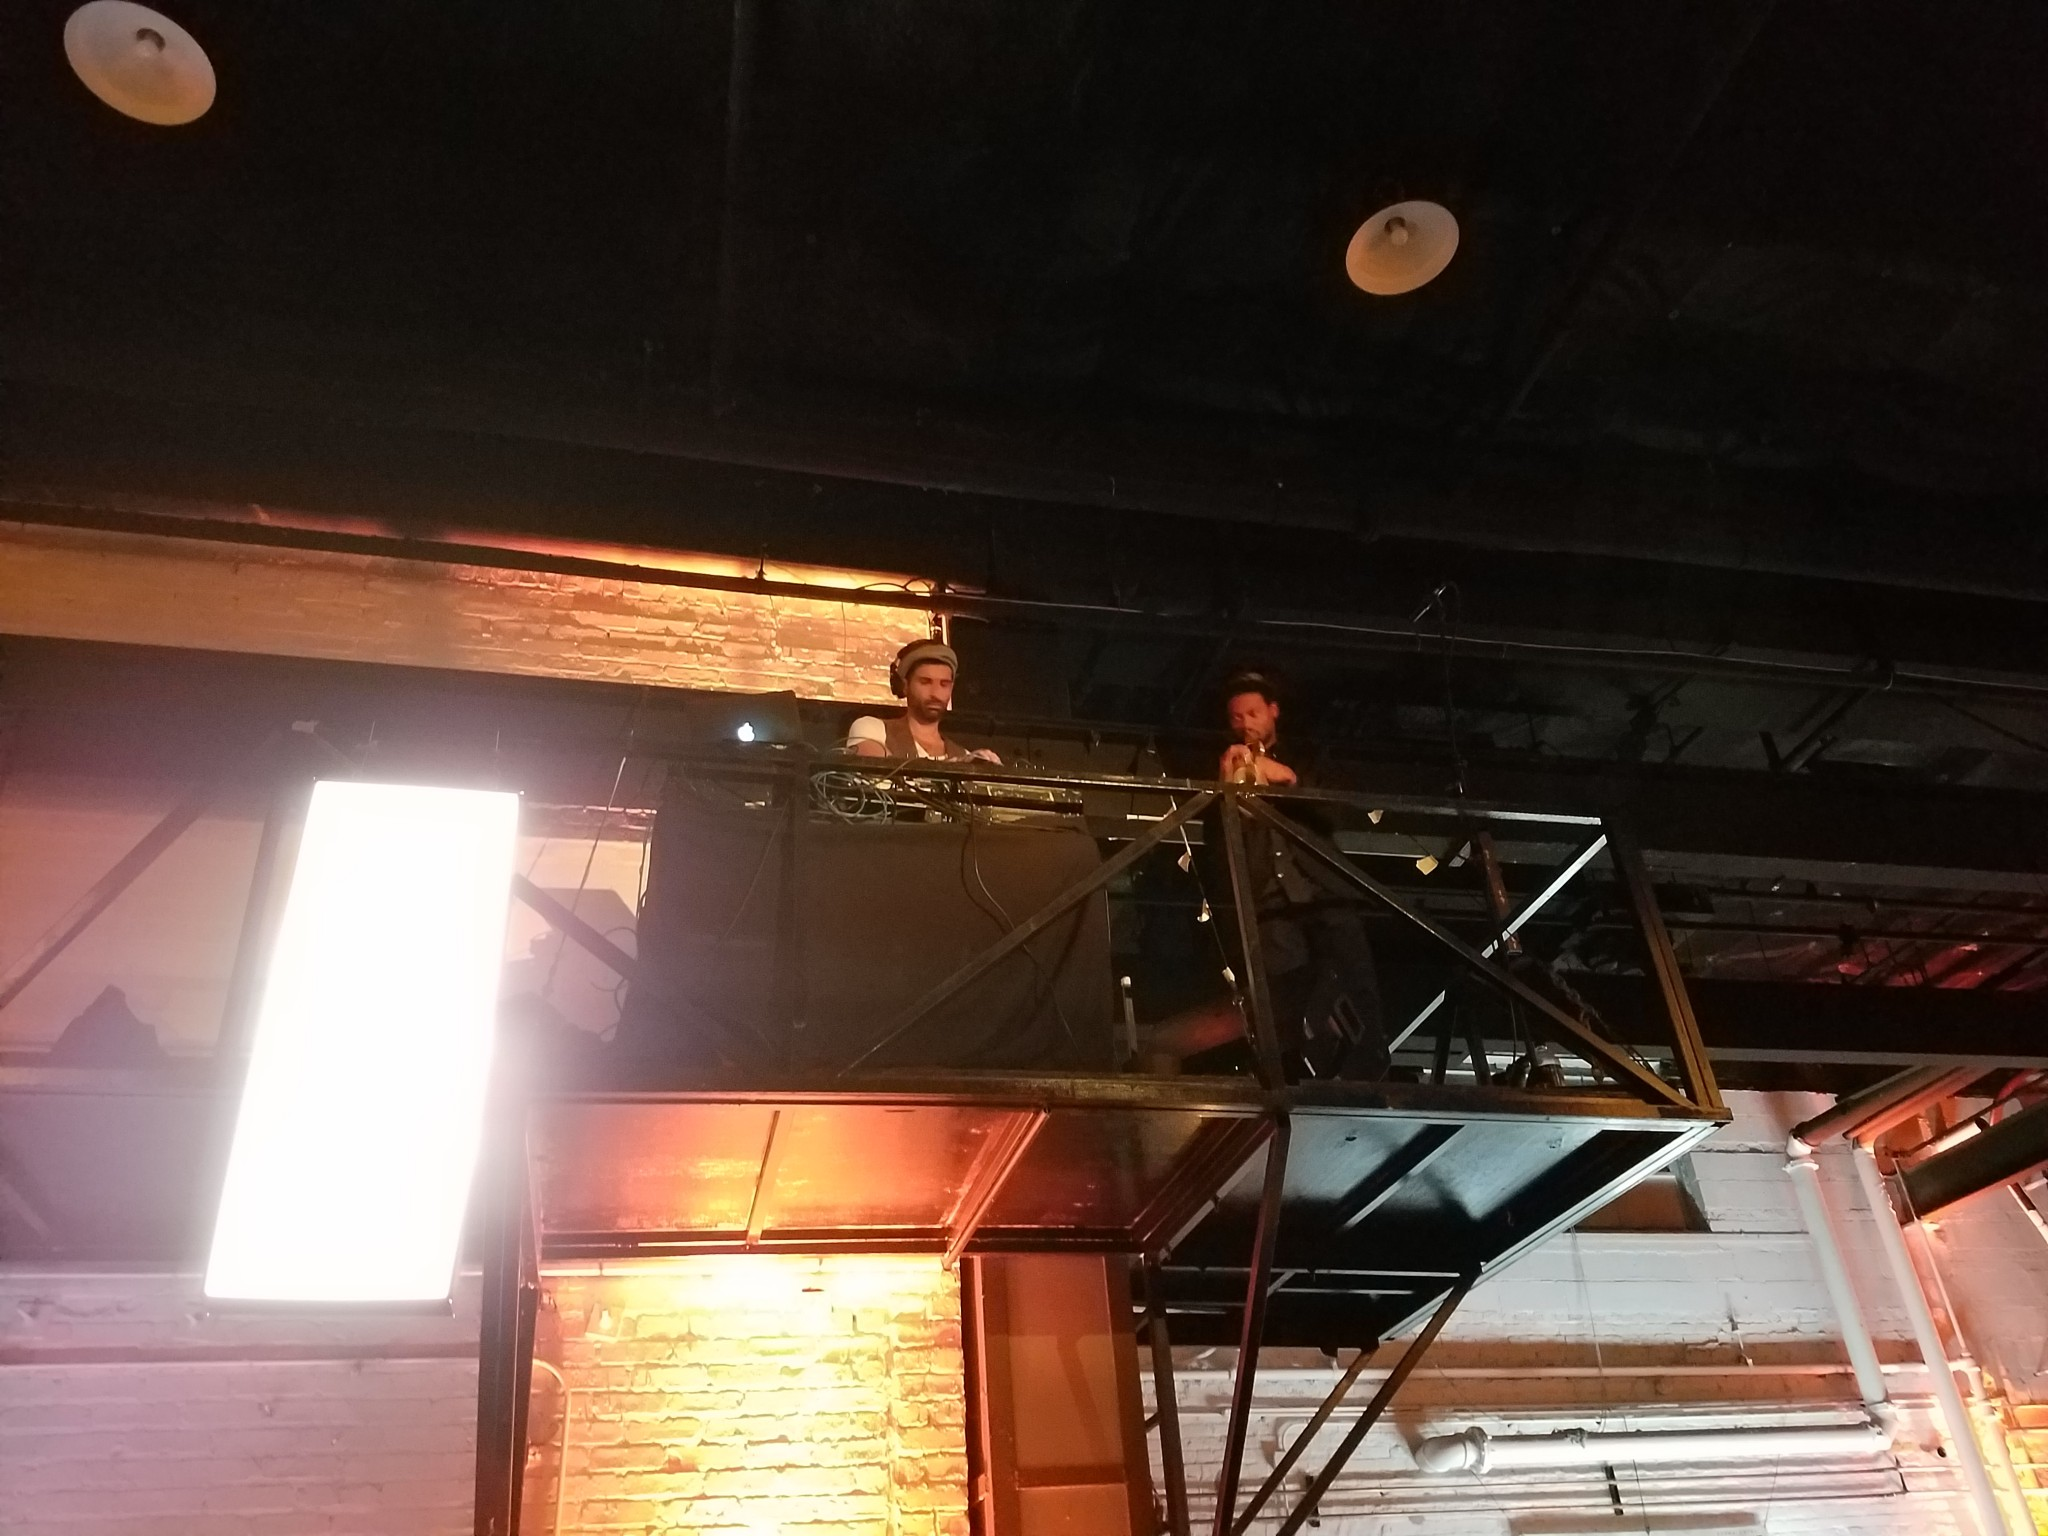 The jazz band playing from the rafters.